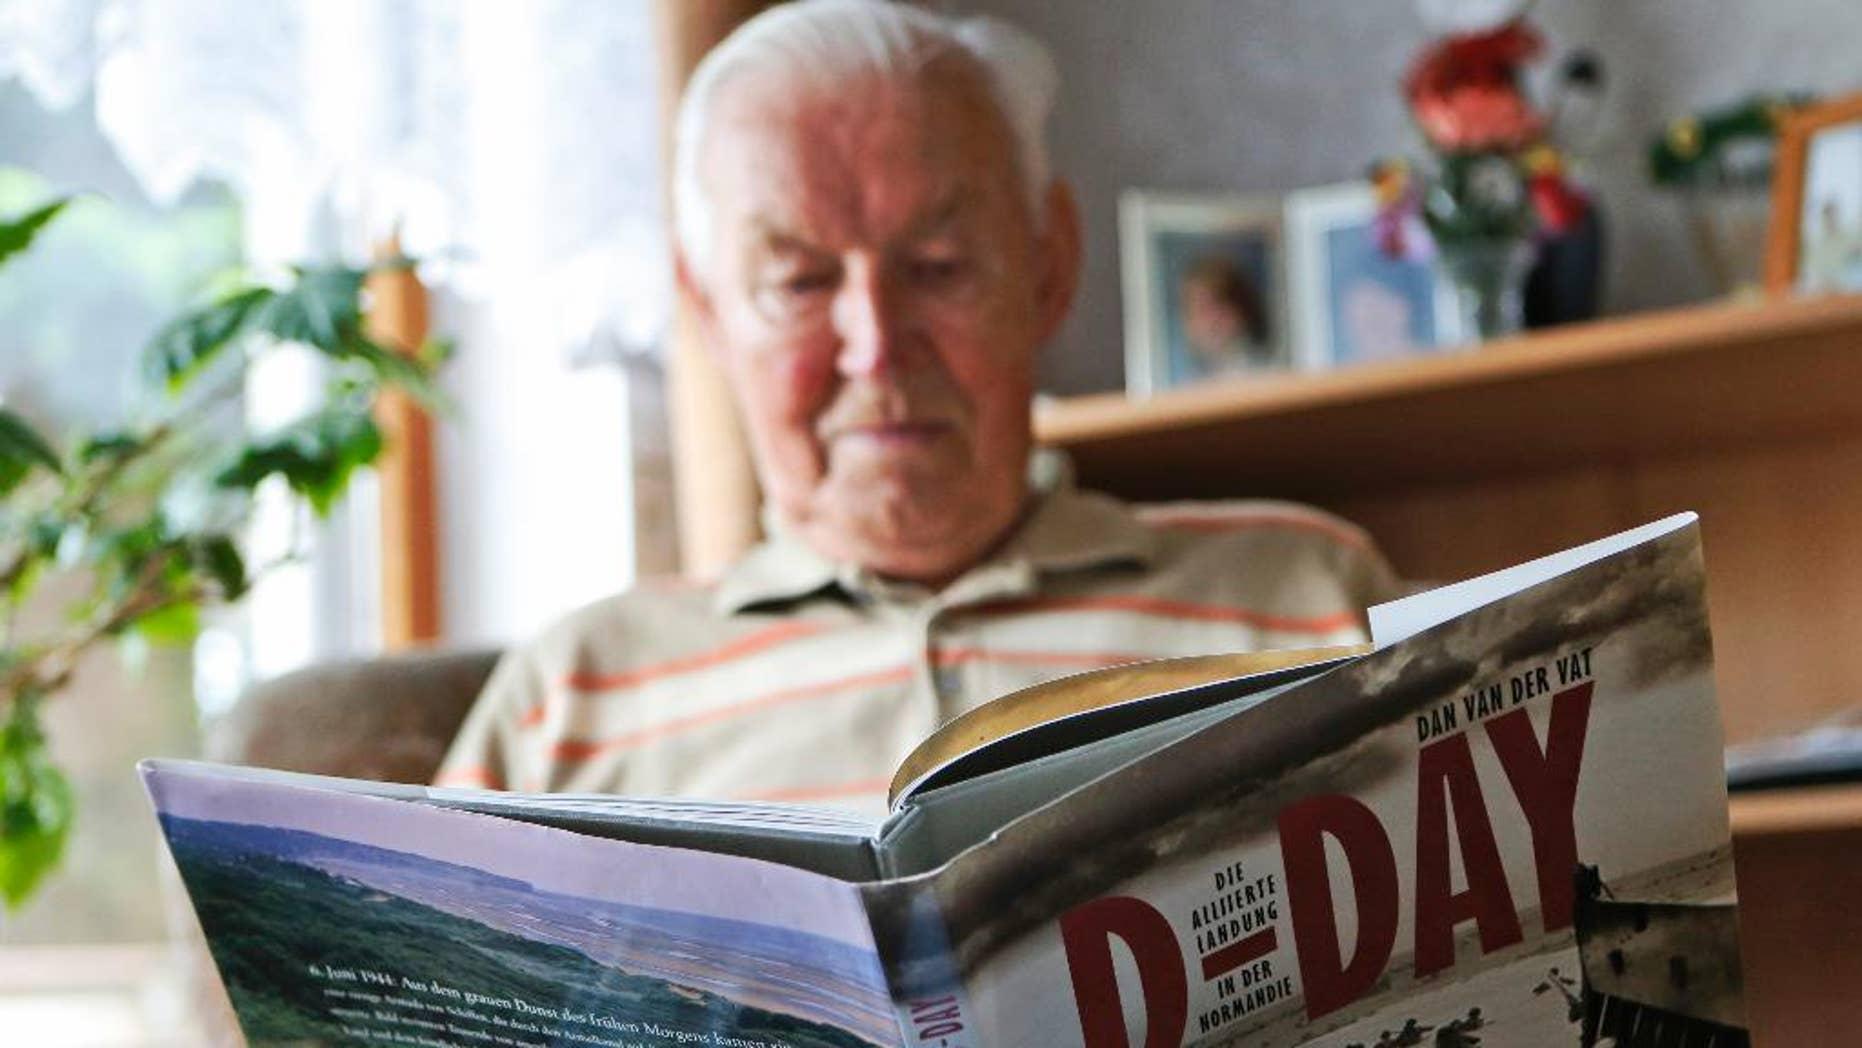 May 28,2014: In this file picture, Germany' s World War 2 and D-Day veteran Paul Golz reads in a book during an interview with the Associated Press in his hometown Koenigswinter, Germany. Paul Golz, one of a few German veterans who plans to attend this week's events marking the 70th anniversary of the D-Day invasion, recalls the generosity of an Allied soldier in Normandy and his luck at being taken prisoner by Americans instead of being sent to fight on the eastern front.